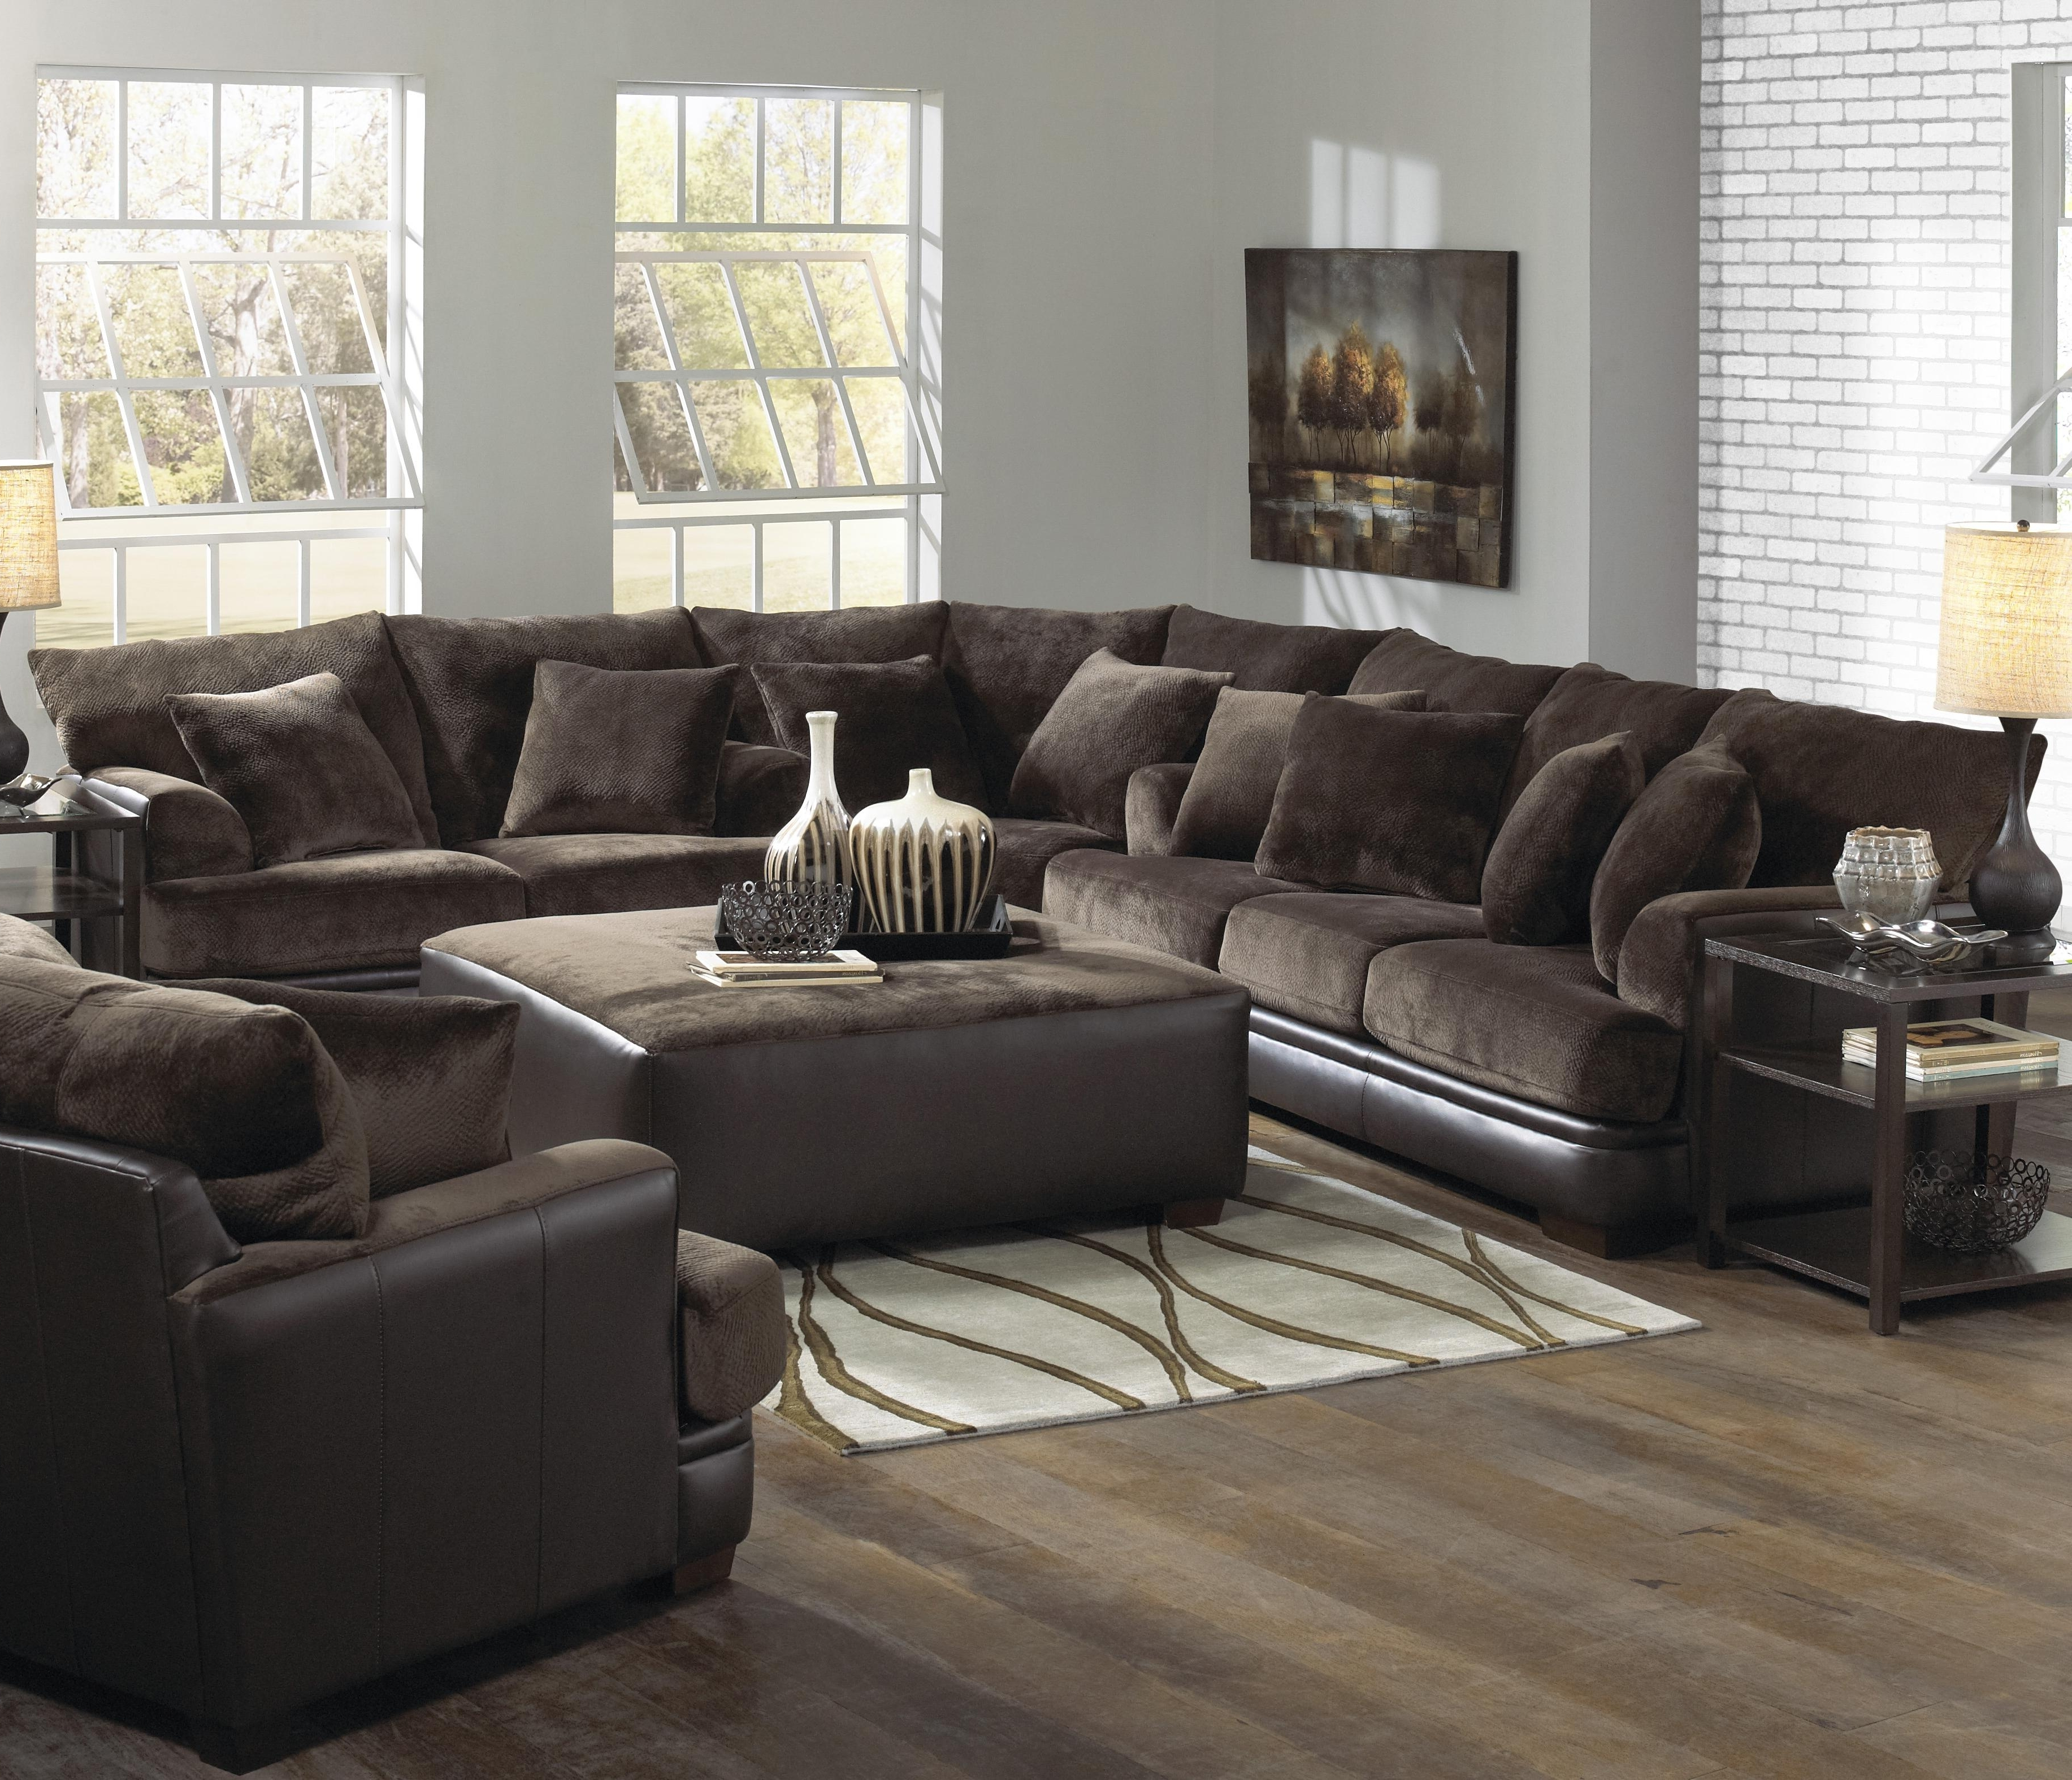 Amazing Large U Shaped Sectional Sofa 18 On Reclining Sectional Pertaining To Best And Newest Small U Shaped Sectional Sofas (View 1 of 15)